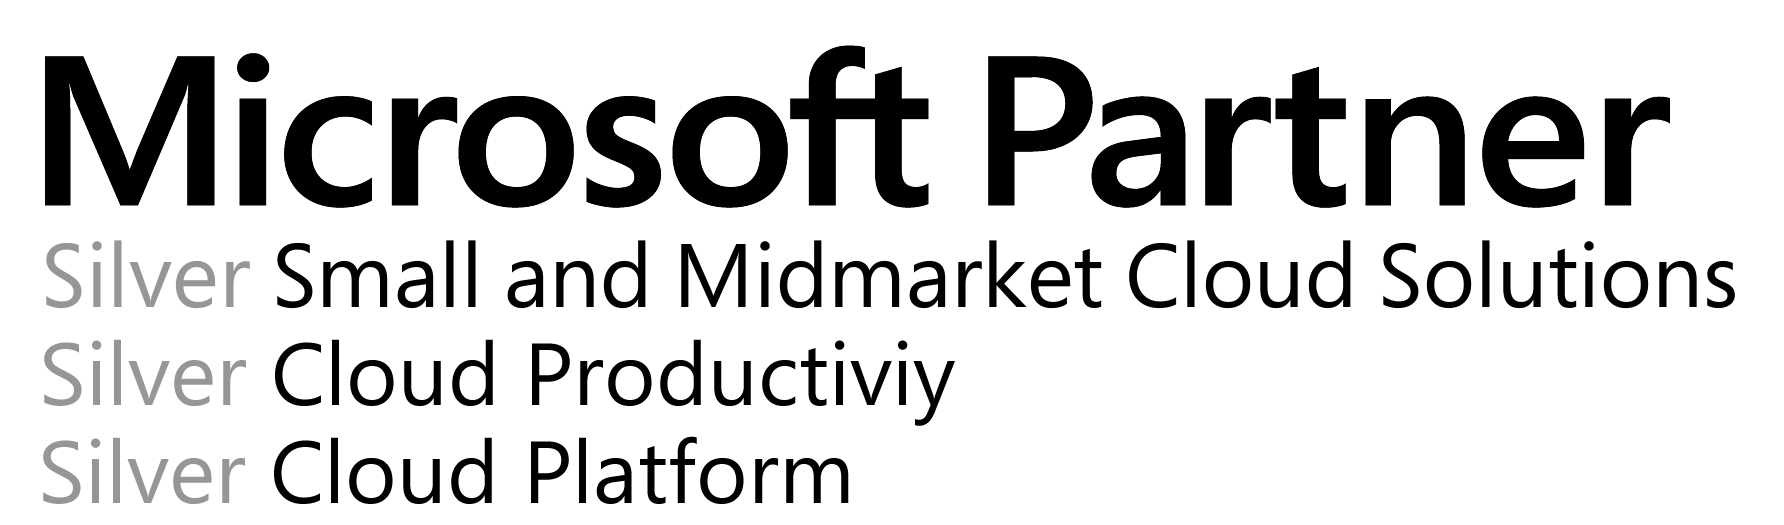 Title: Microsoft Partner - Description: Silver Small and Midmarket Cloud SolutionsSilver Cloud ProductivitySilver Cloud Platform